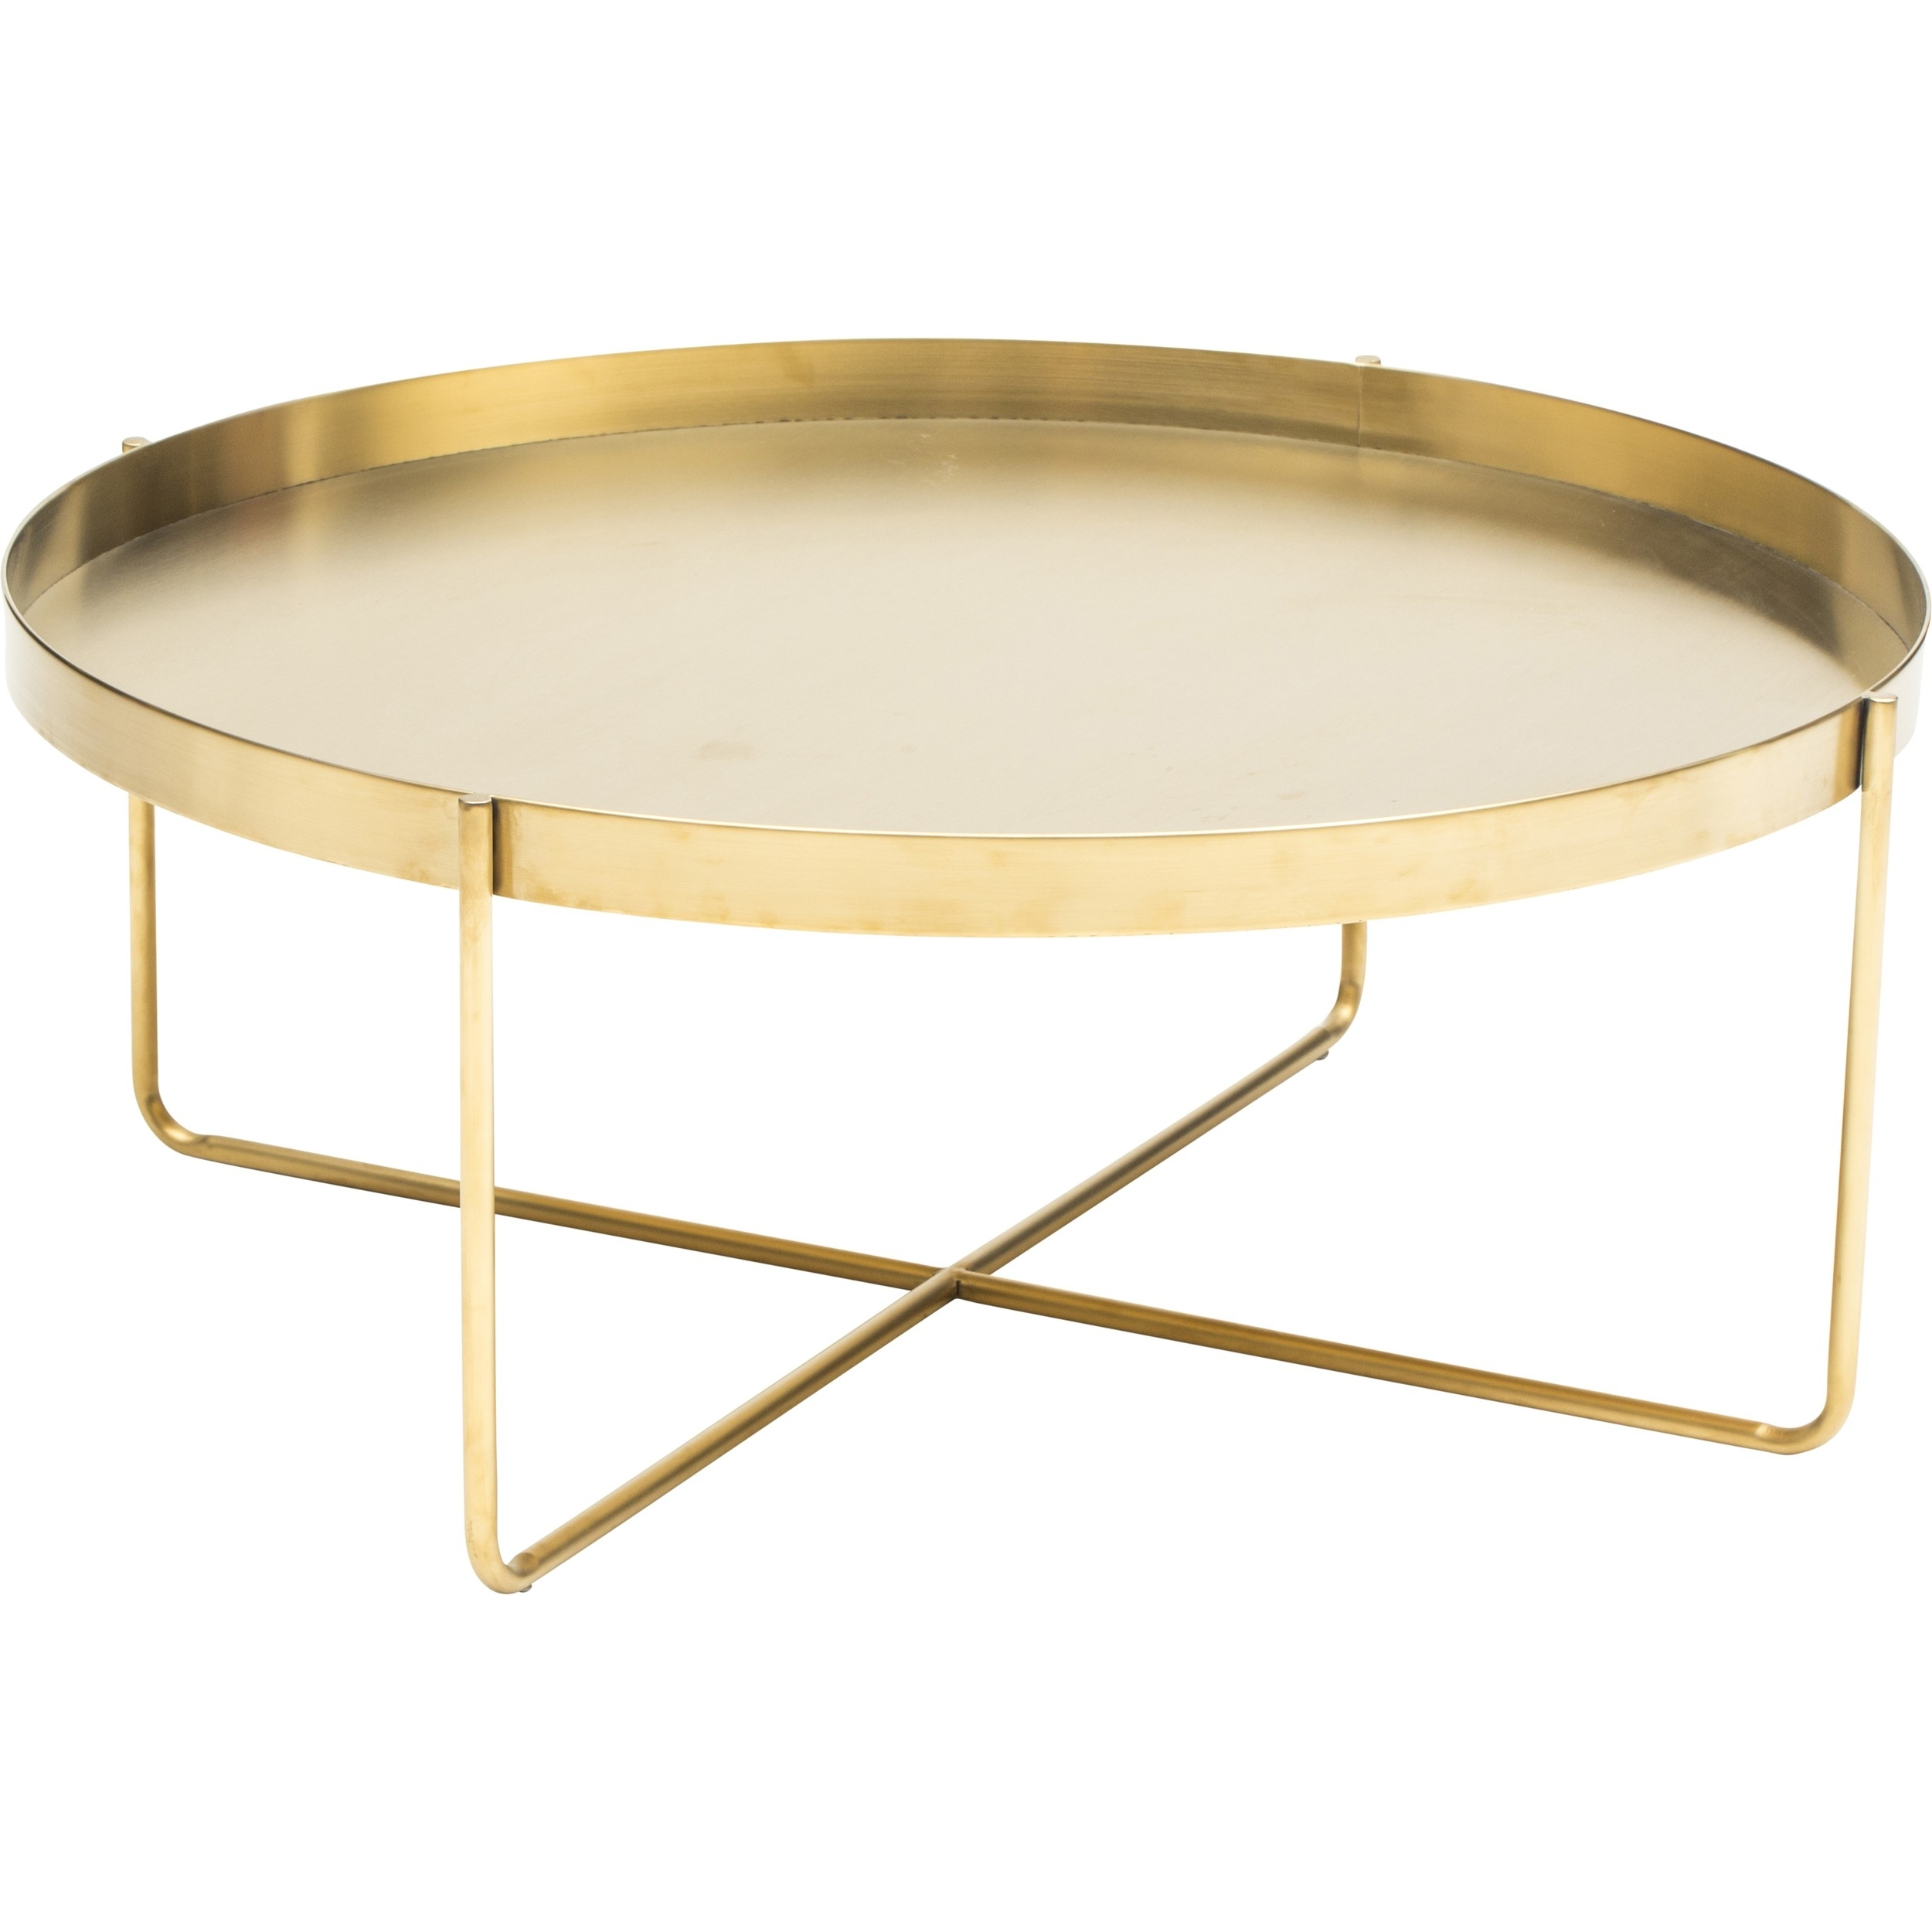 Gold Coffee Tables - Coffee Table Ideas intended for Cuff Hammered Gold Coffee Tables (Image 9 of 30)